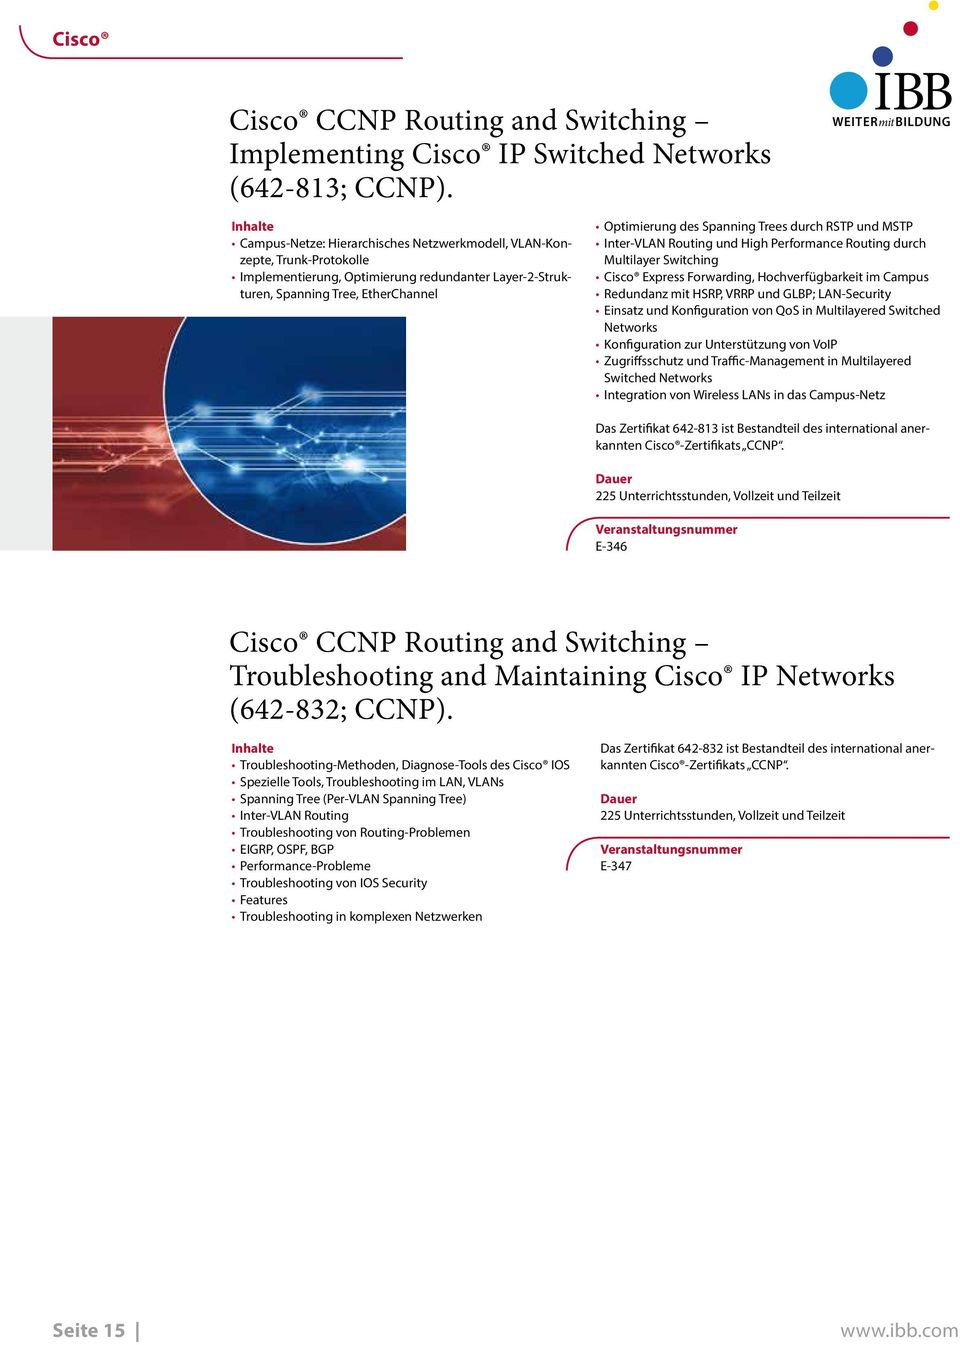 durch RSTP und MSTP Inter-VLAN Routing und High Performance Routing durch Multilayer Switching Cisco Express Forwarding, Hochverfügbarkeit im Campus Redundanz mit HSRP, VRRP und GLBP; LAN-Security